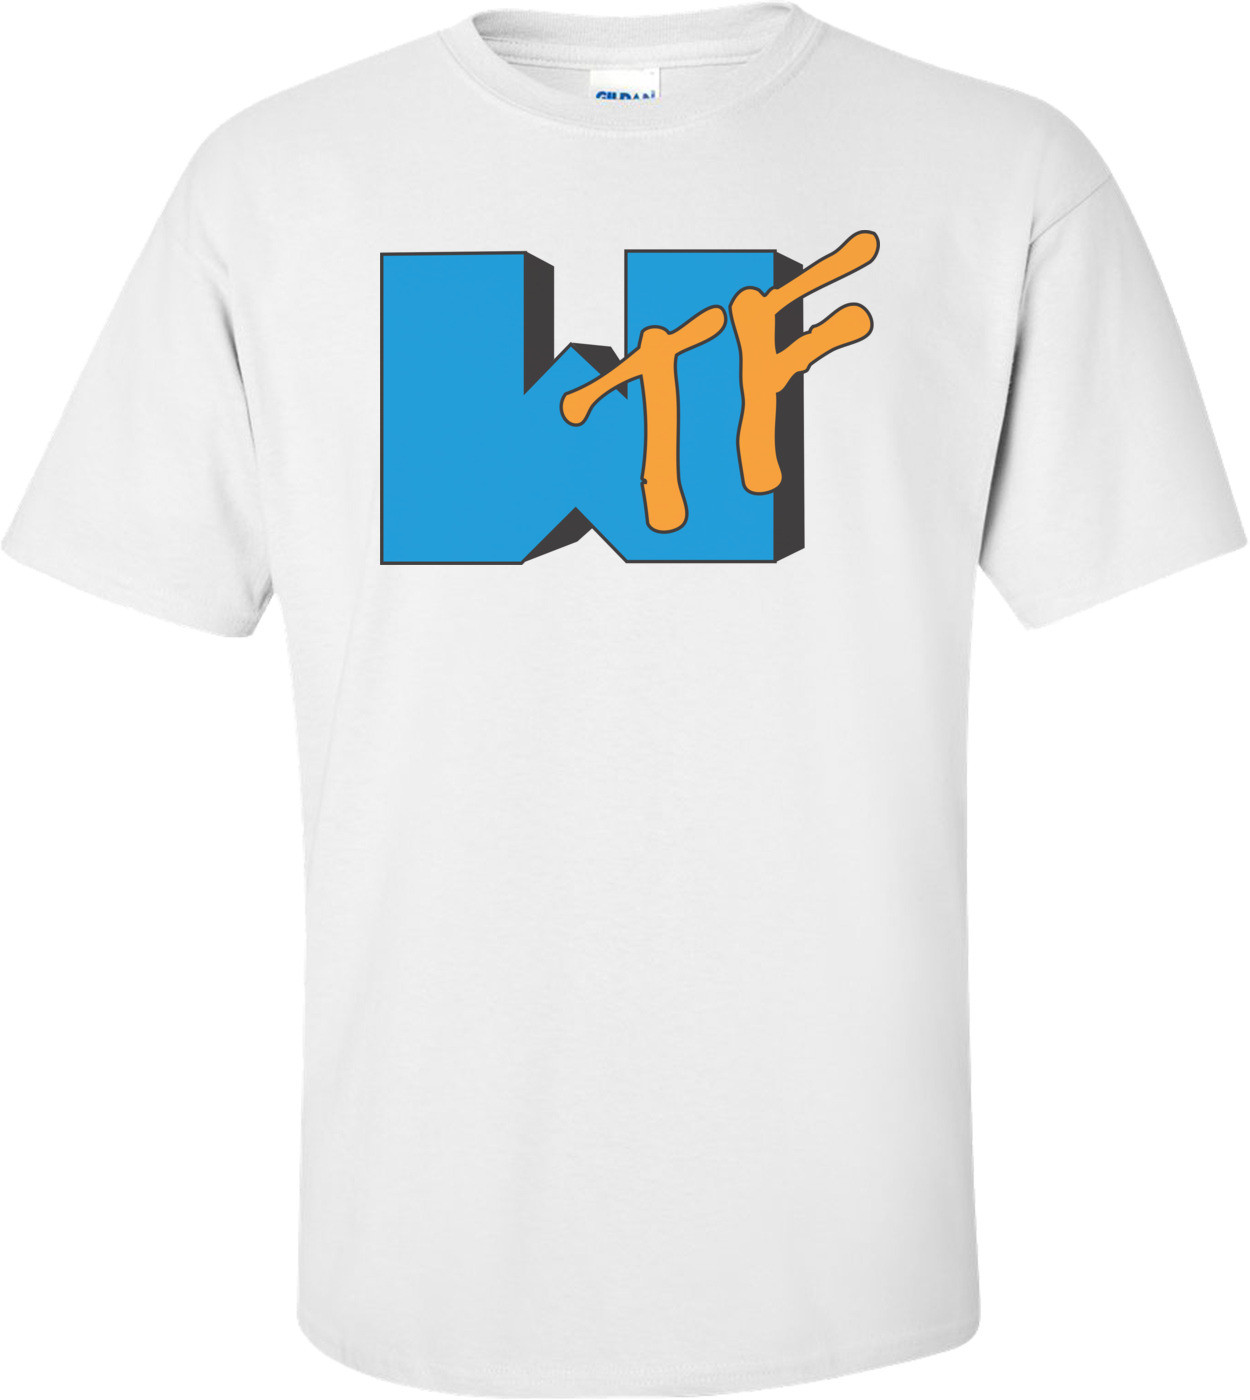 Wtf Mtv Spoof T-shirt